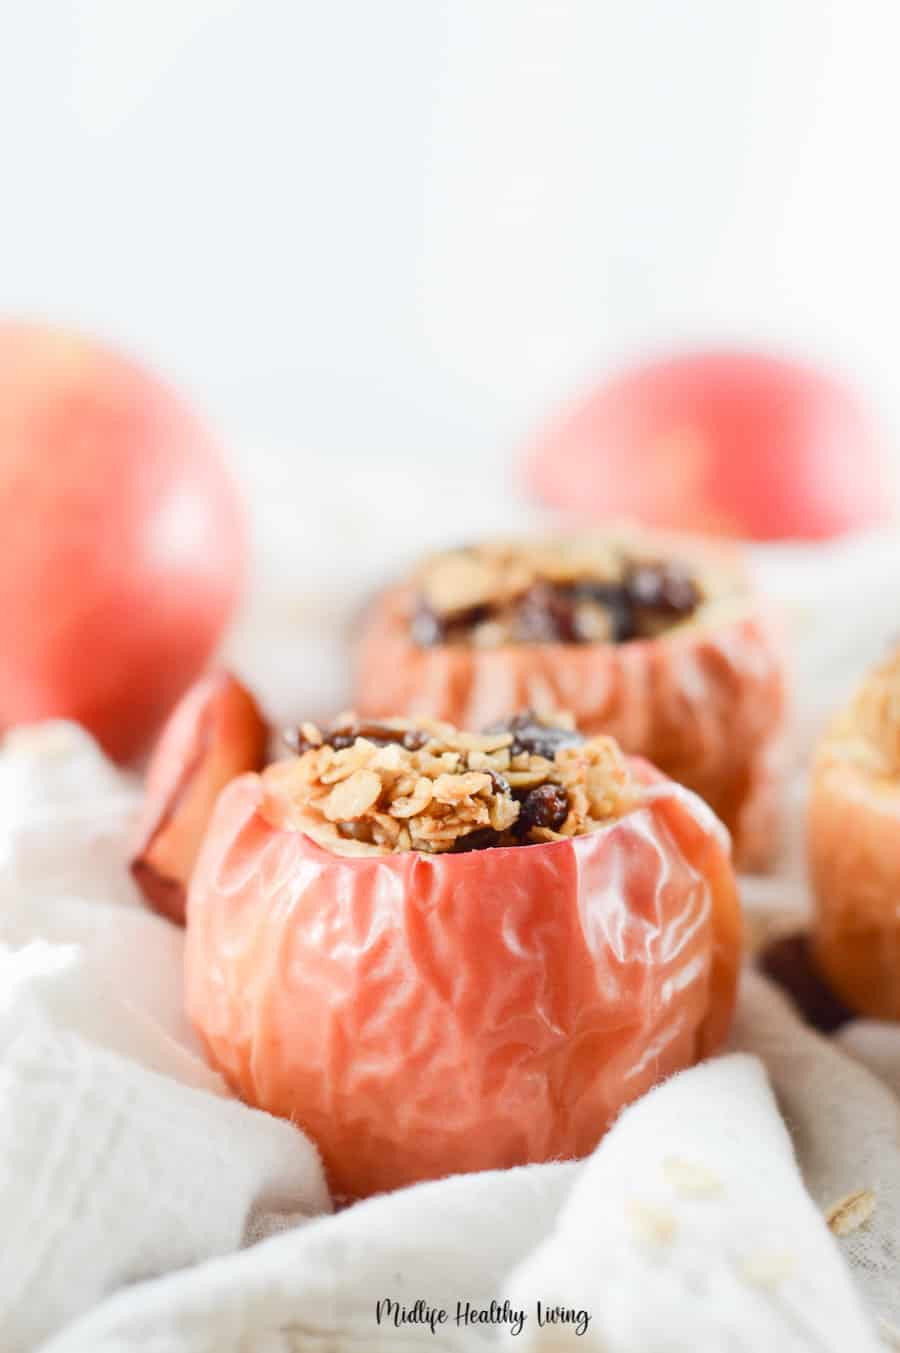 A delicious view of the finished baked apples for Weight Watchers.